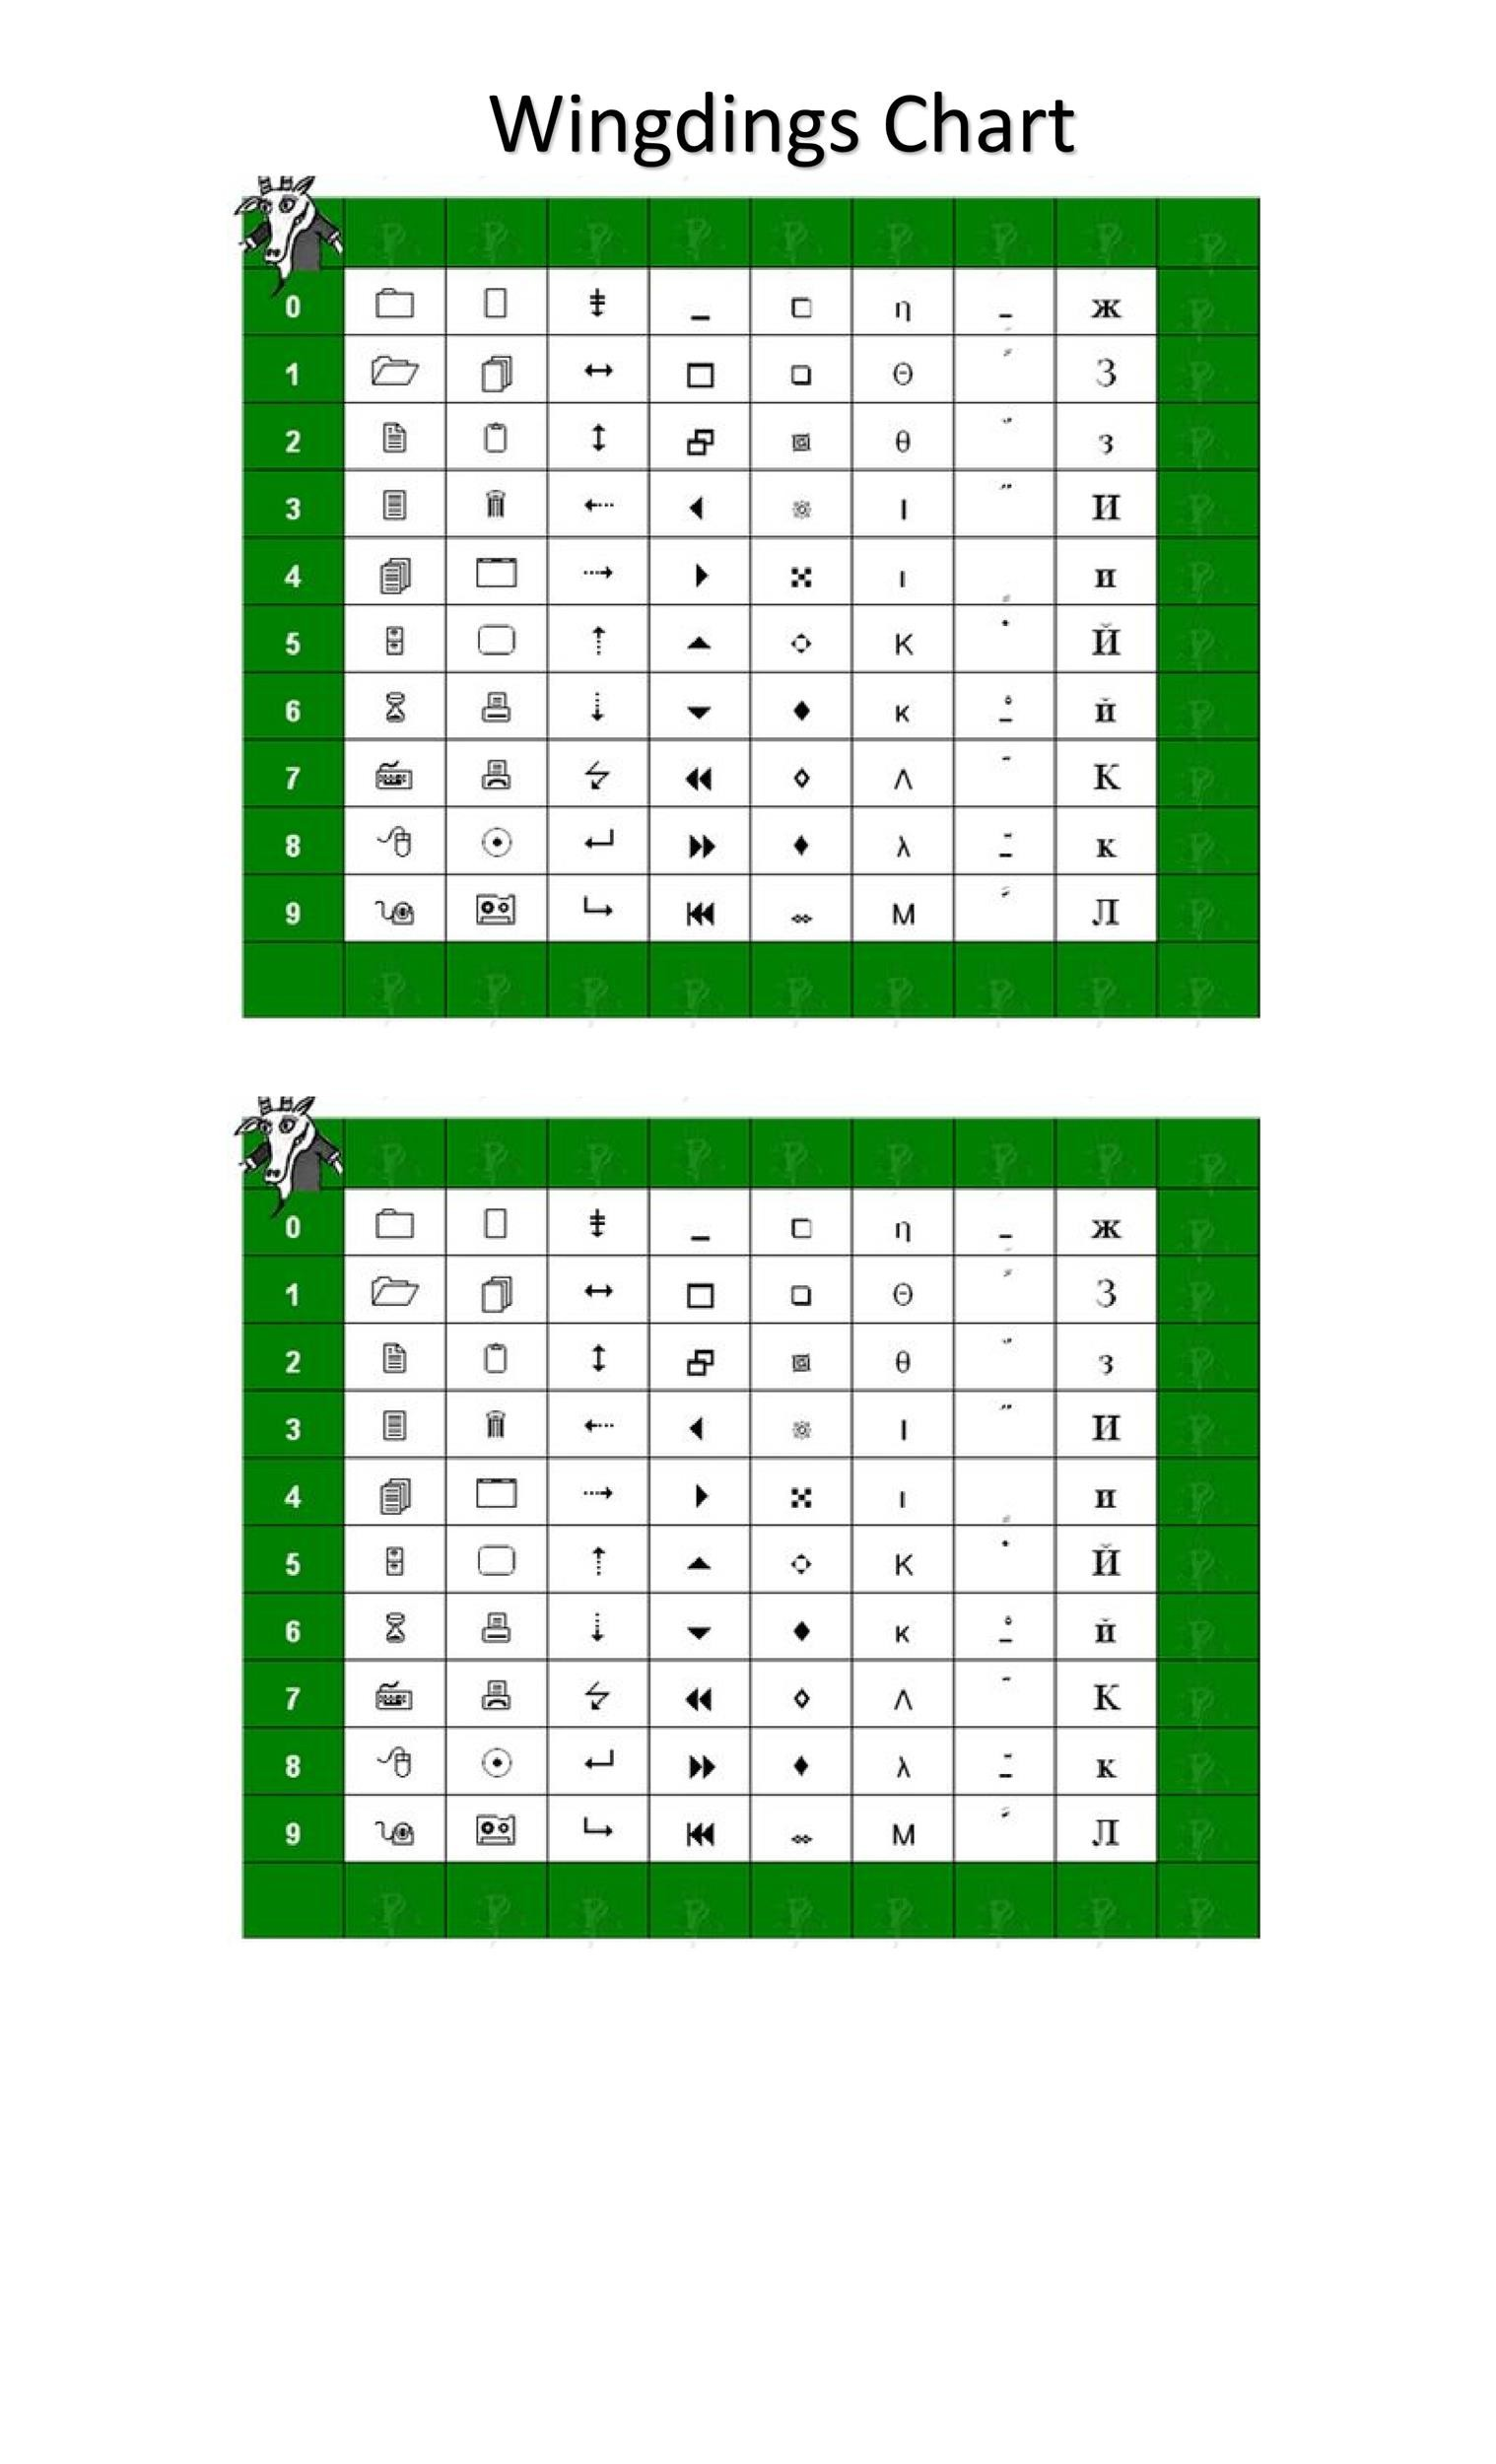 Attractive Wingdings Chart Gallery - Administrative Officer Cover - sample wingdings chart